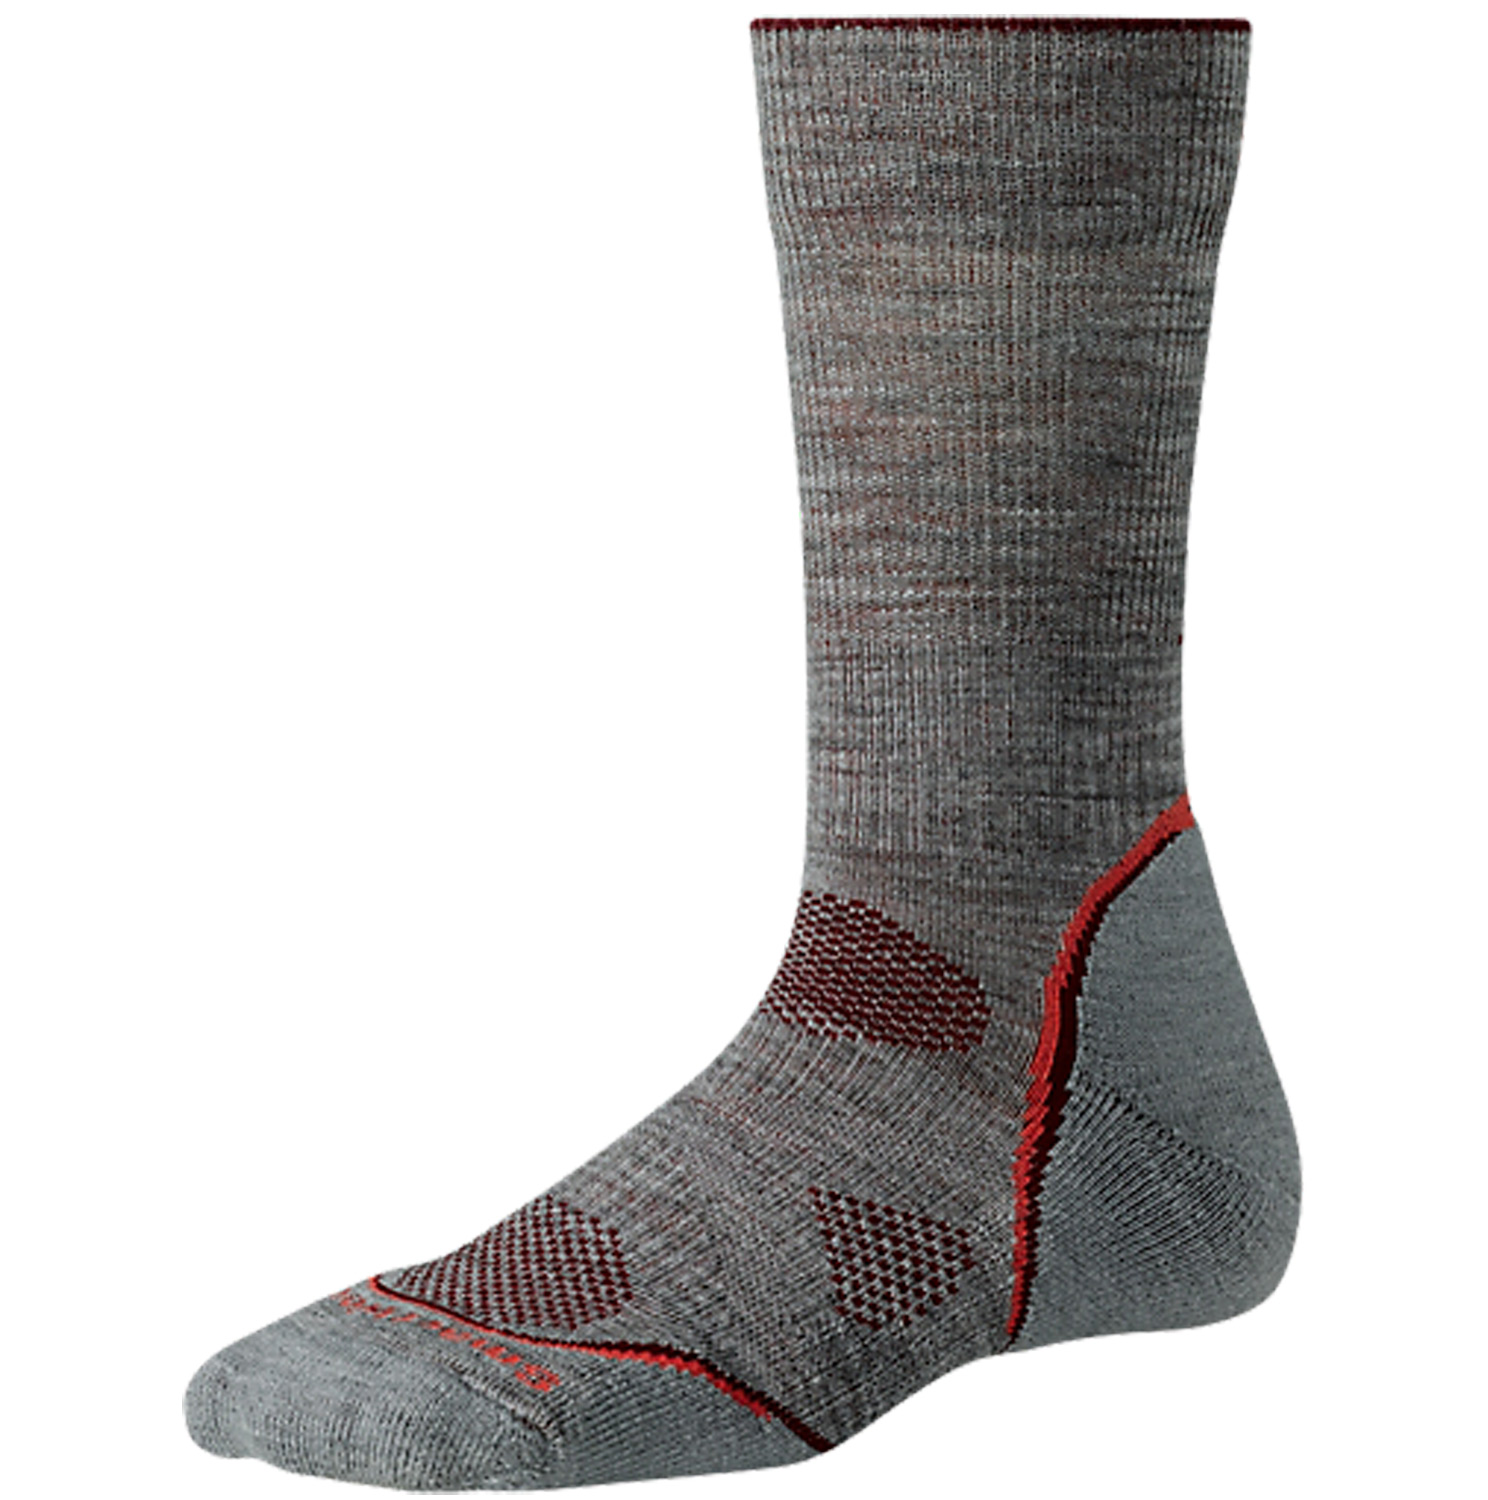 "Featuring a women's specific design, this sock stays in place and offers a light cushion for all-day performance. The padded Achilles tab offers additional protection. ReliaWool Technology in the heel and toe adds more durability than ever before.Key Features of the Smartwool PhD Outdoor Light Crew Socks: Knit in USA of 70% Merino Wool, 28% Nylon, 2% Elastane 4 Degree Elite Fit System uses two elastics for greater stretch and recovery to keep the sock in place Patented ReliaWool Technology in high impact areas provide longer lasting protection to keep feet comfortable Strategically placed mesh ventilation zones provide ventilation for temperature and moisture management 8.5"" overall height - $15.95"